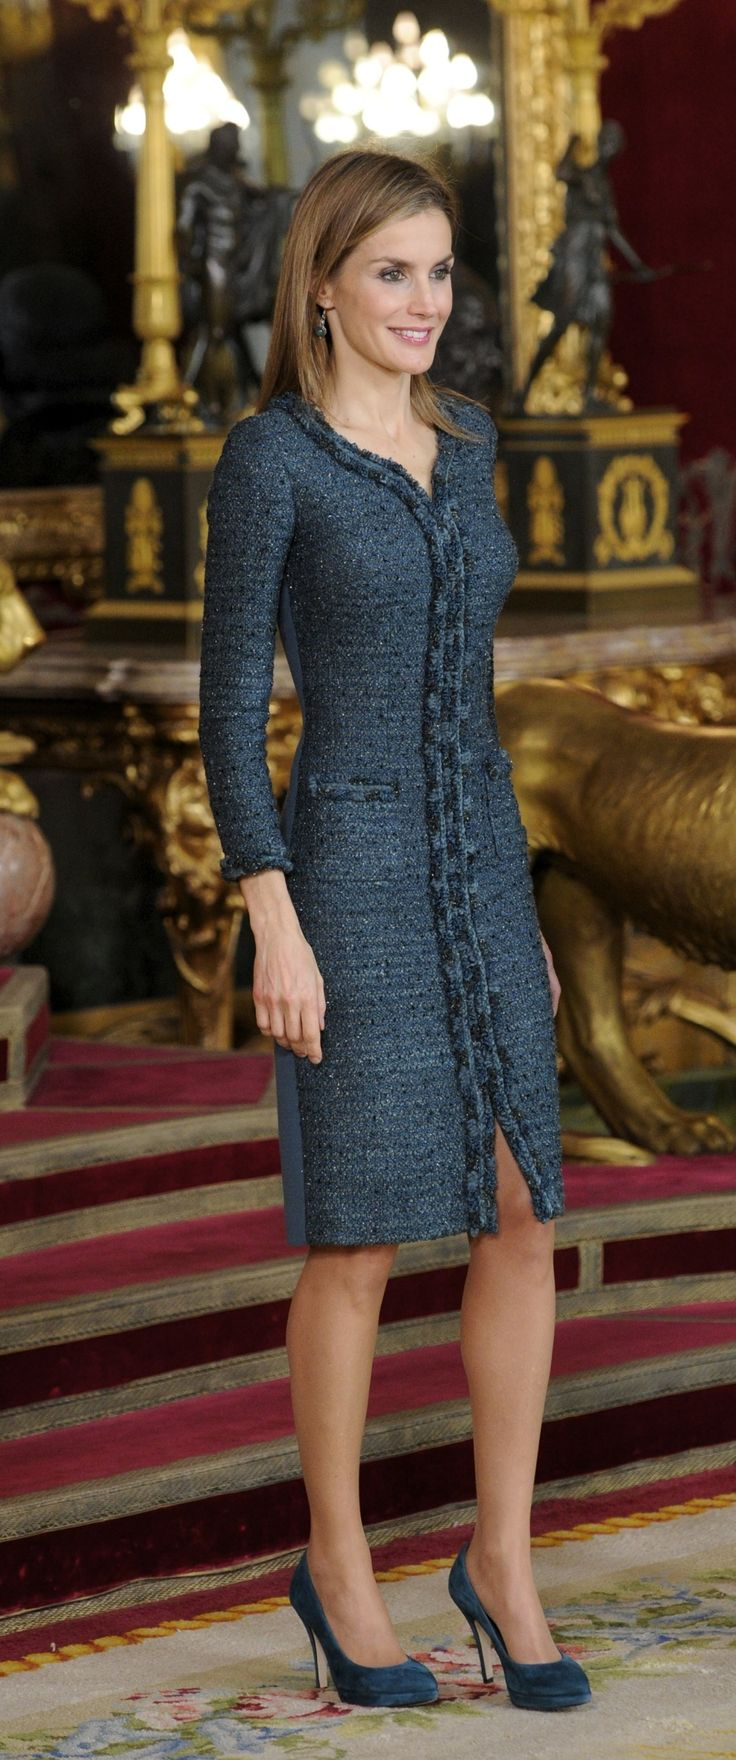 Who: Queen Letizia of Spain Wore: An elegant dark teal coatdress Where: Spain's National Day Royal Reception via @stylelist | http://aol.it/1wwHq0O